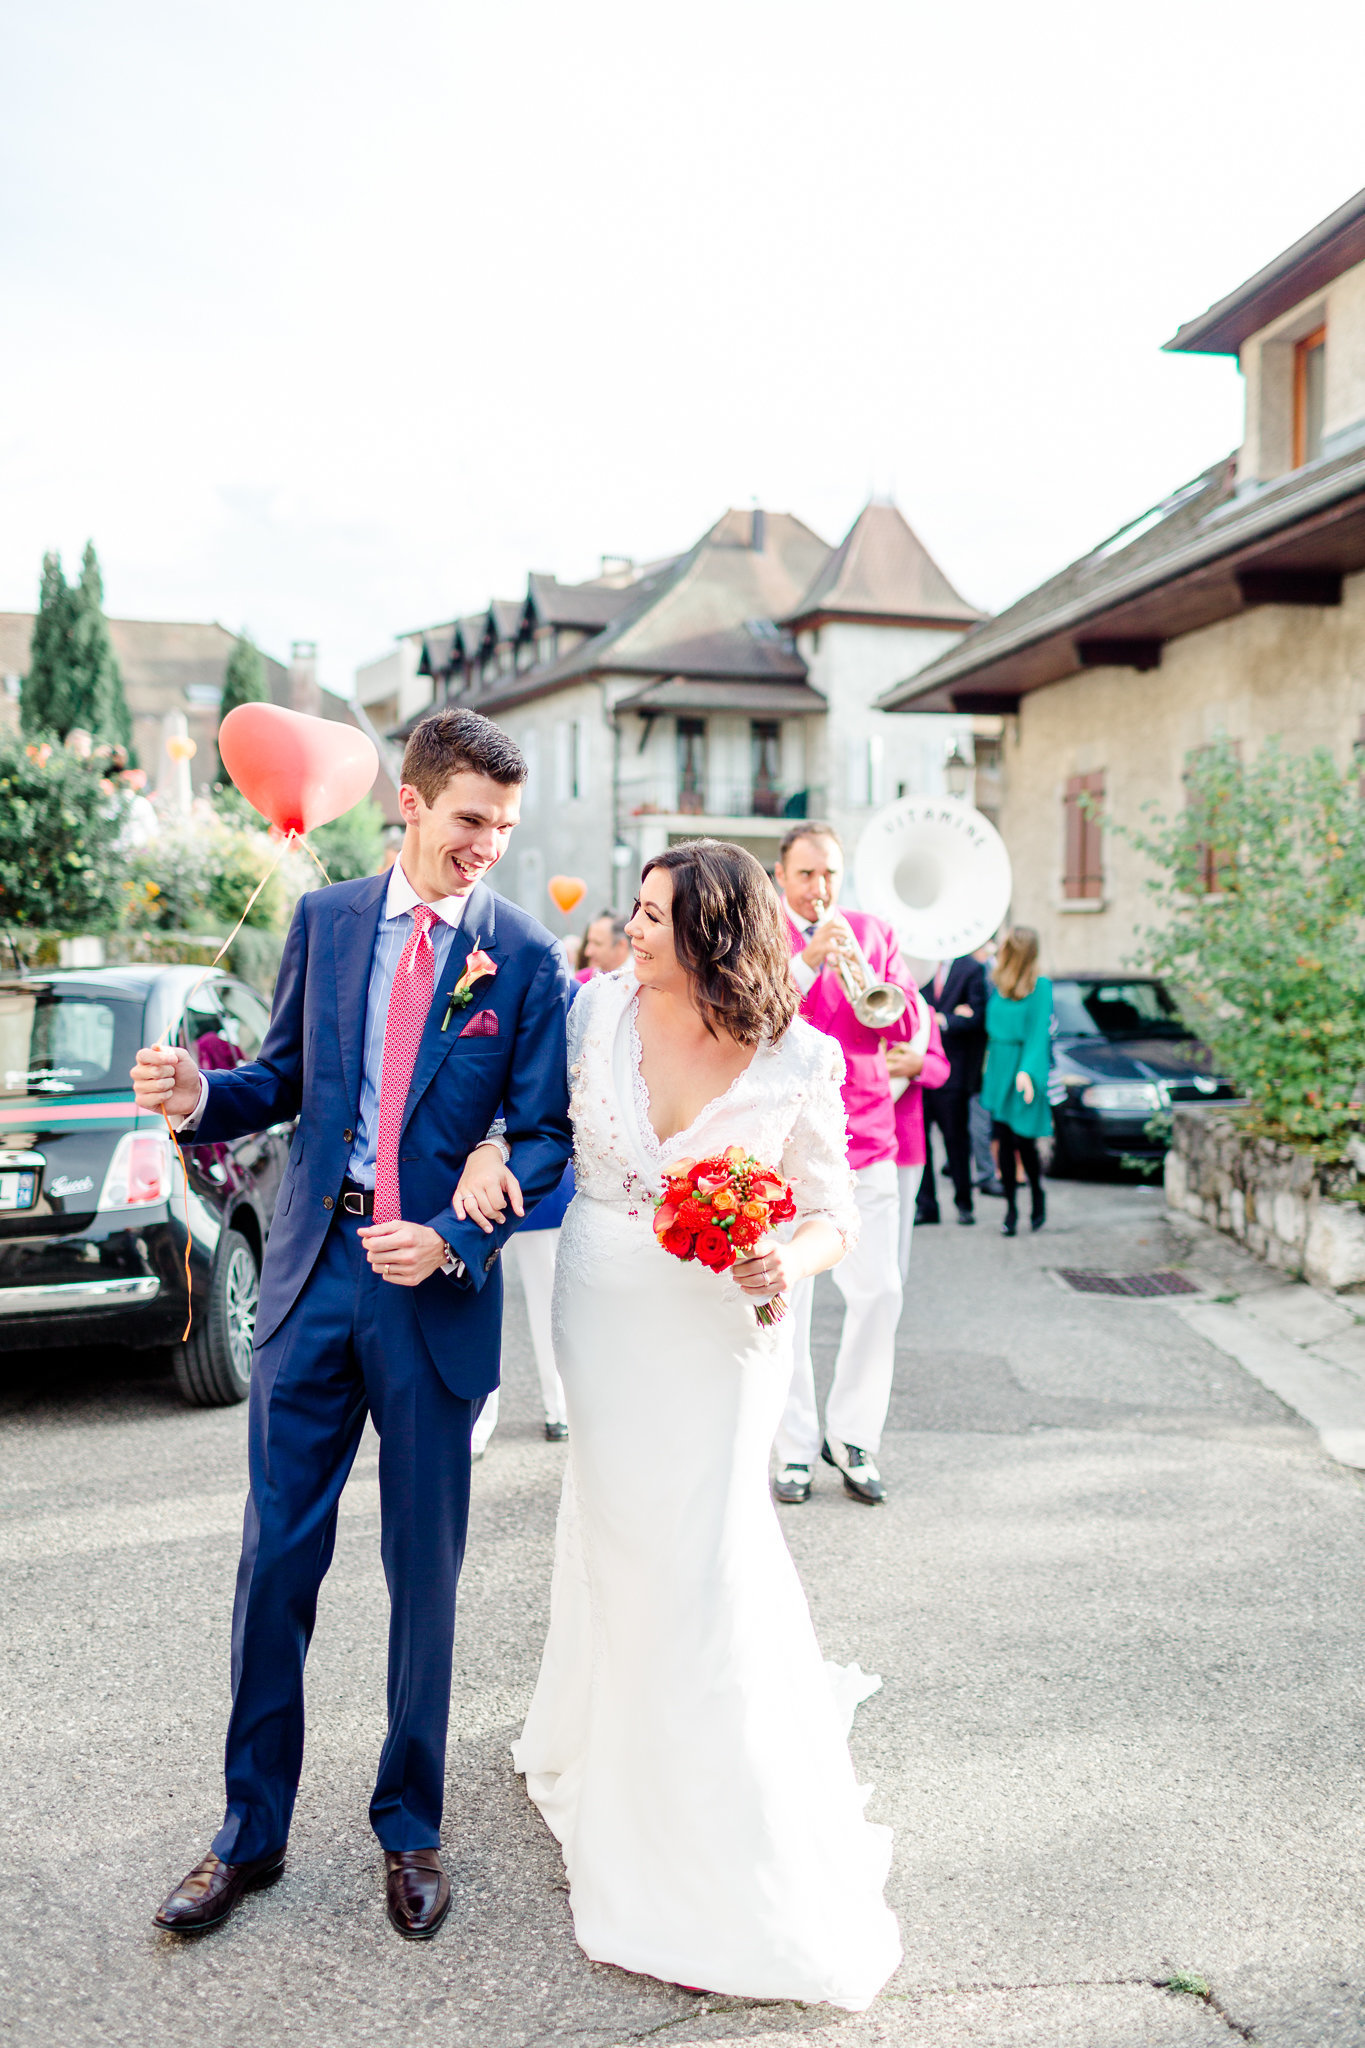 photographe-mariage-talloires-france-lisa-renault-photographie-wedding-destination-photographer-103